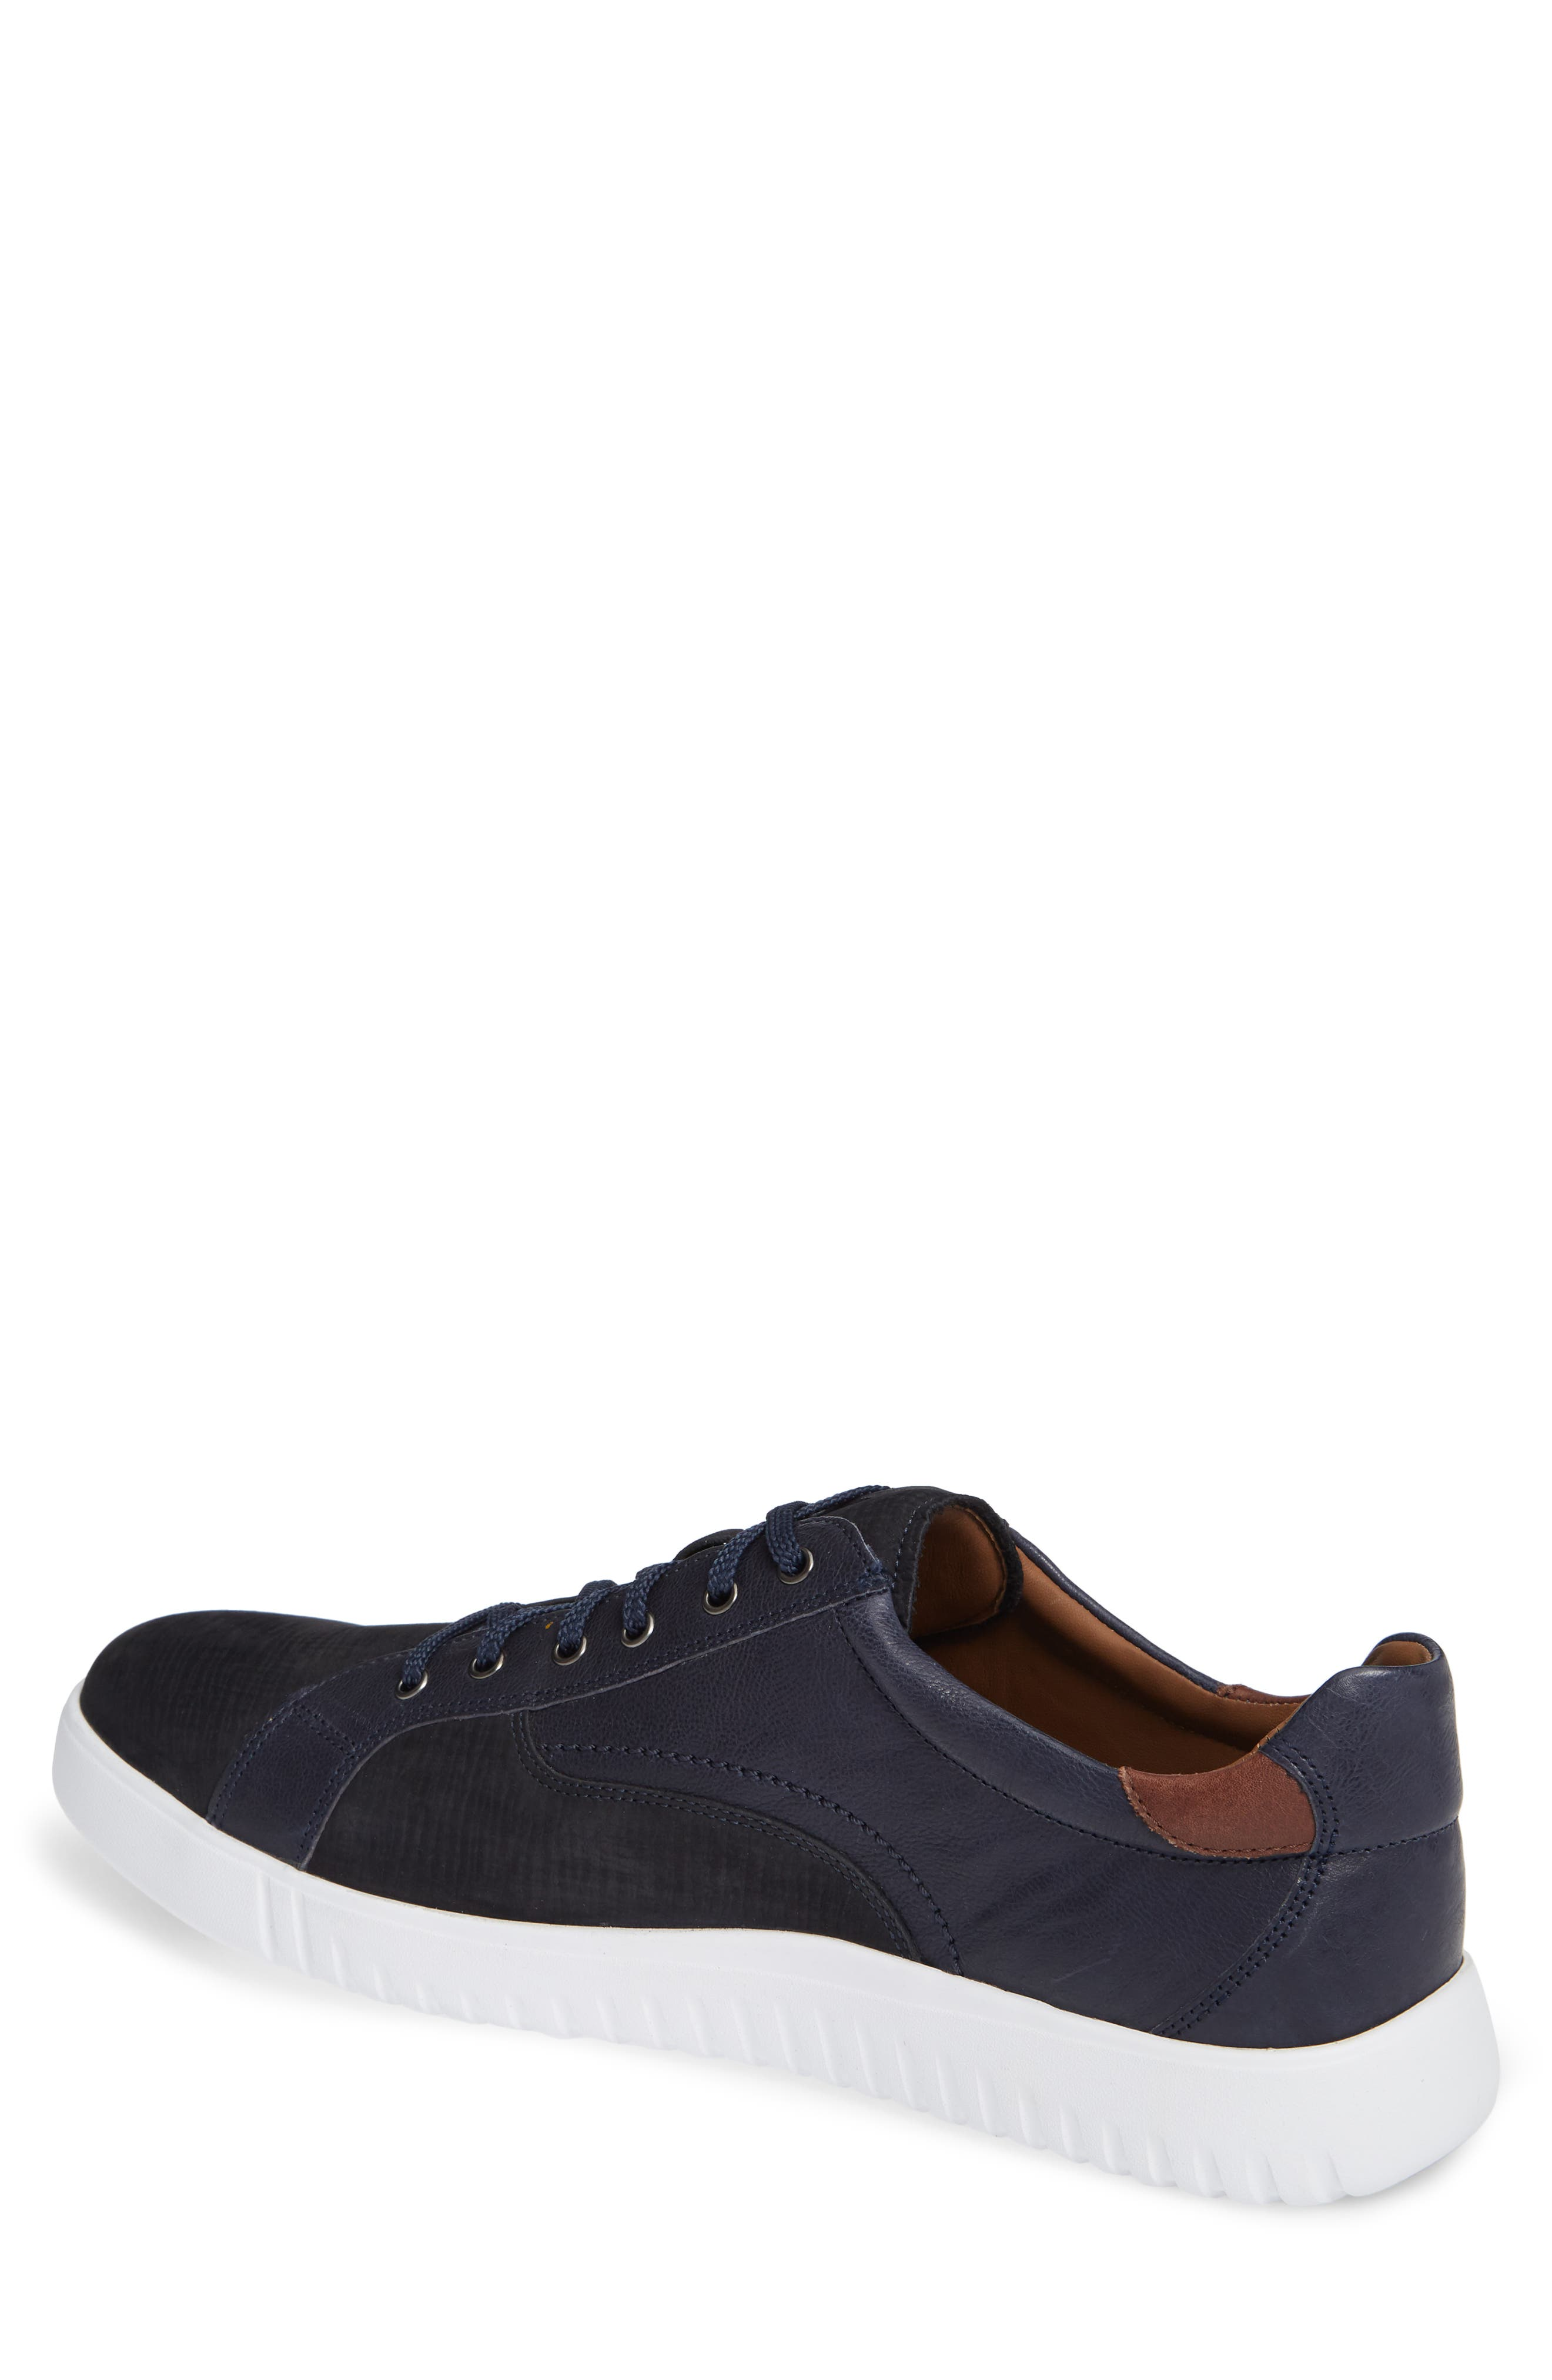 McFarland Sneaker,                             Alternate thumbnail 2, color,                             NAVY NUBUCK